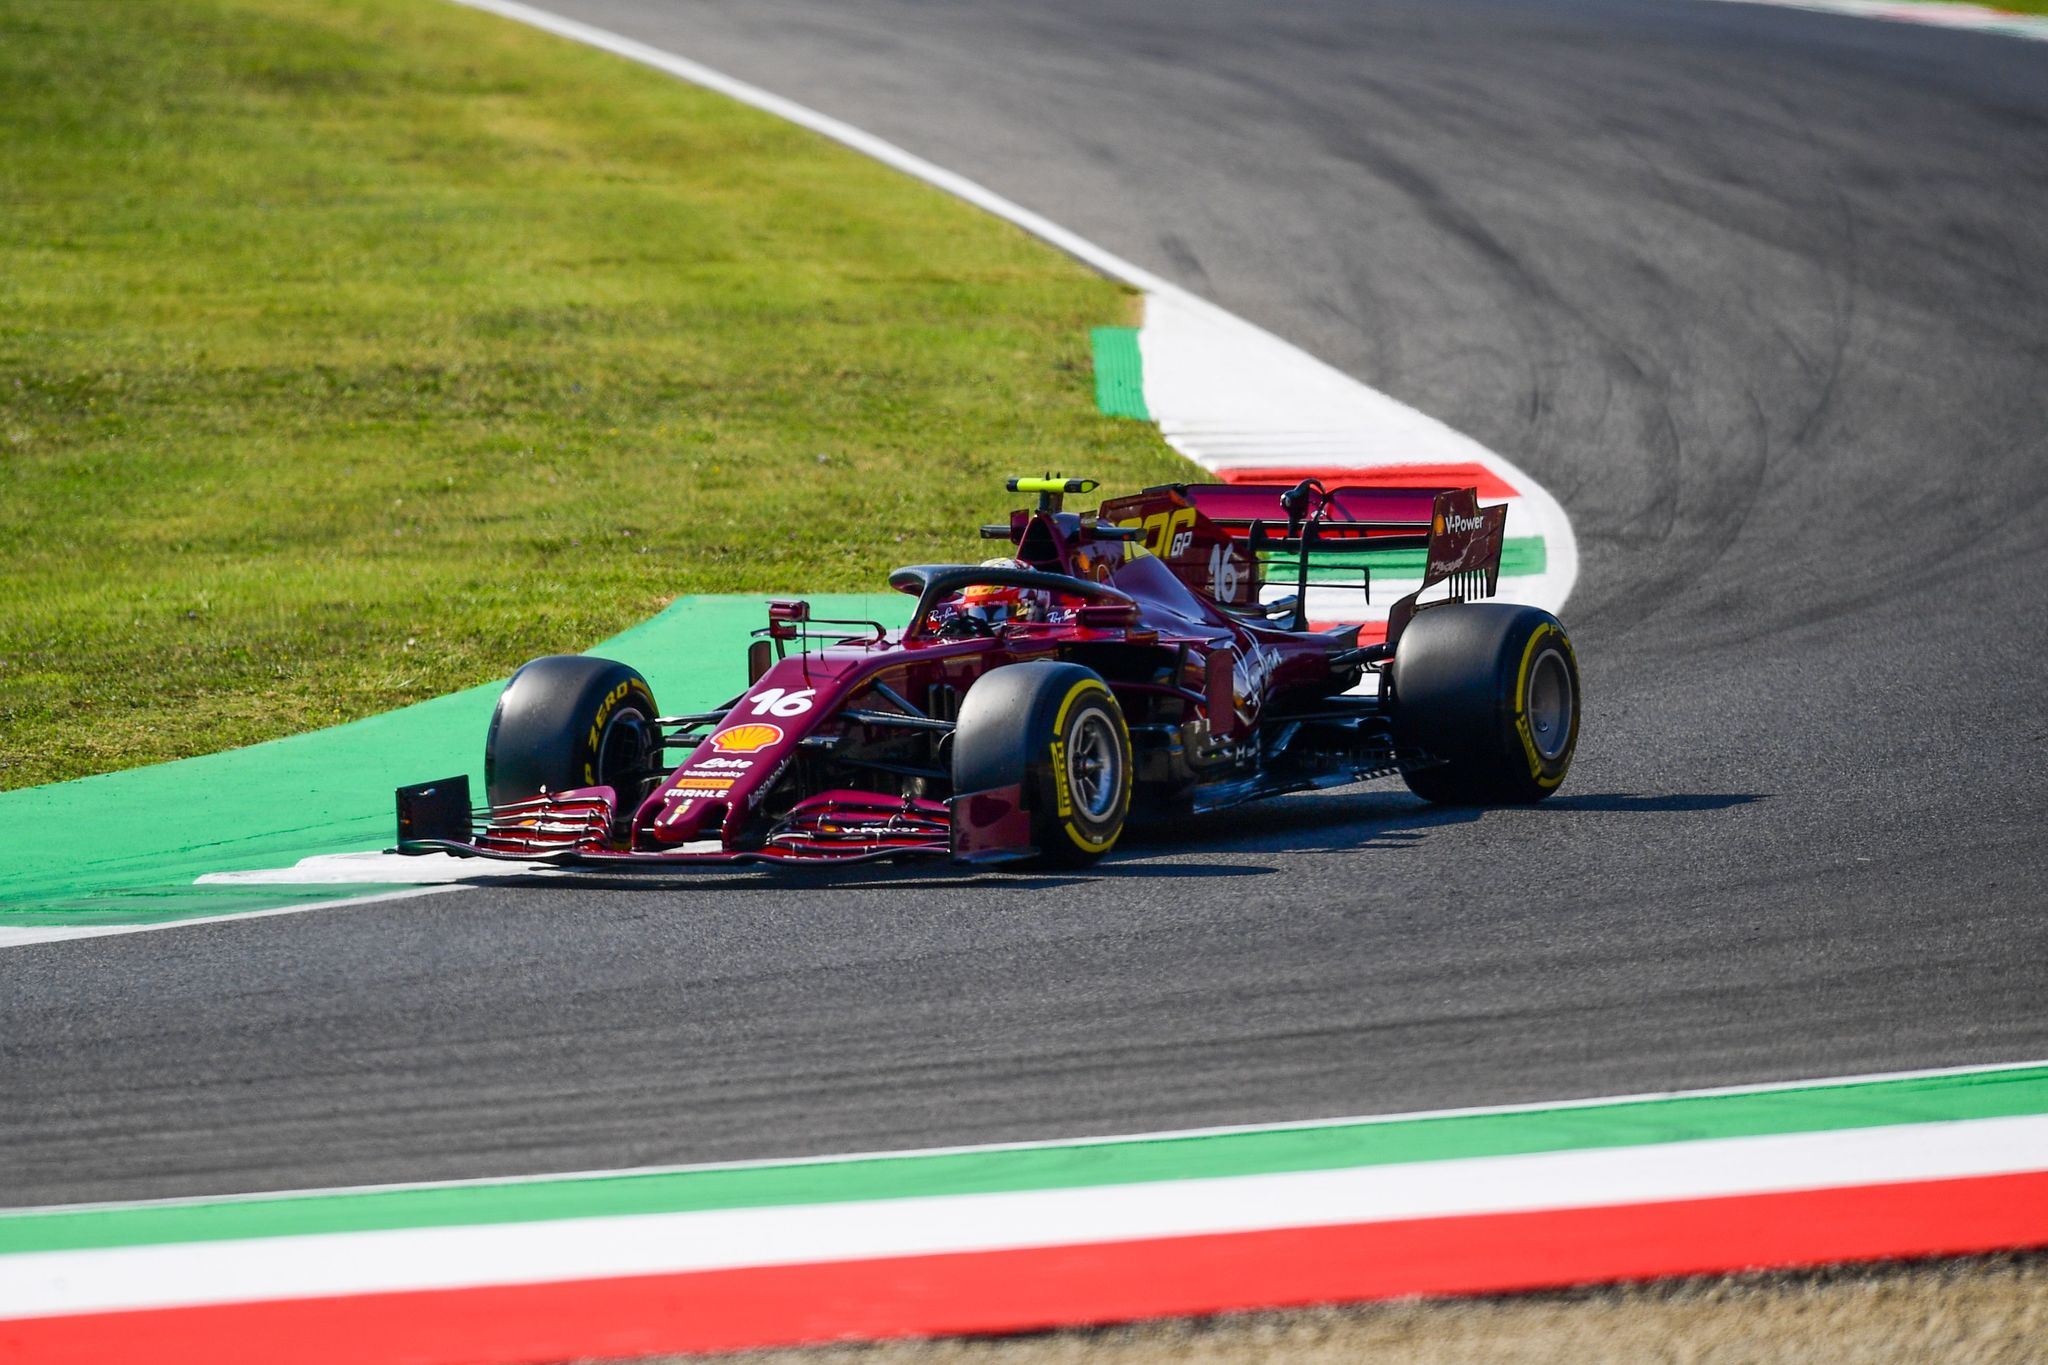 lt;HIT gt;Ferrari lt;/HIT gt;'s Monegasque driver Charles Leclerc drives during the first practice session at the Mugello circuit ahead of the Tuscany Formula One Grand Prix in Scarperia e San Piero on September 11, 2020. (Photo by Miguel MEDINA / AFP)